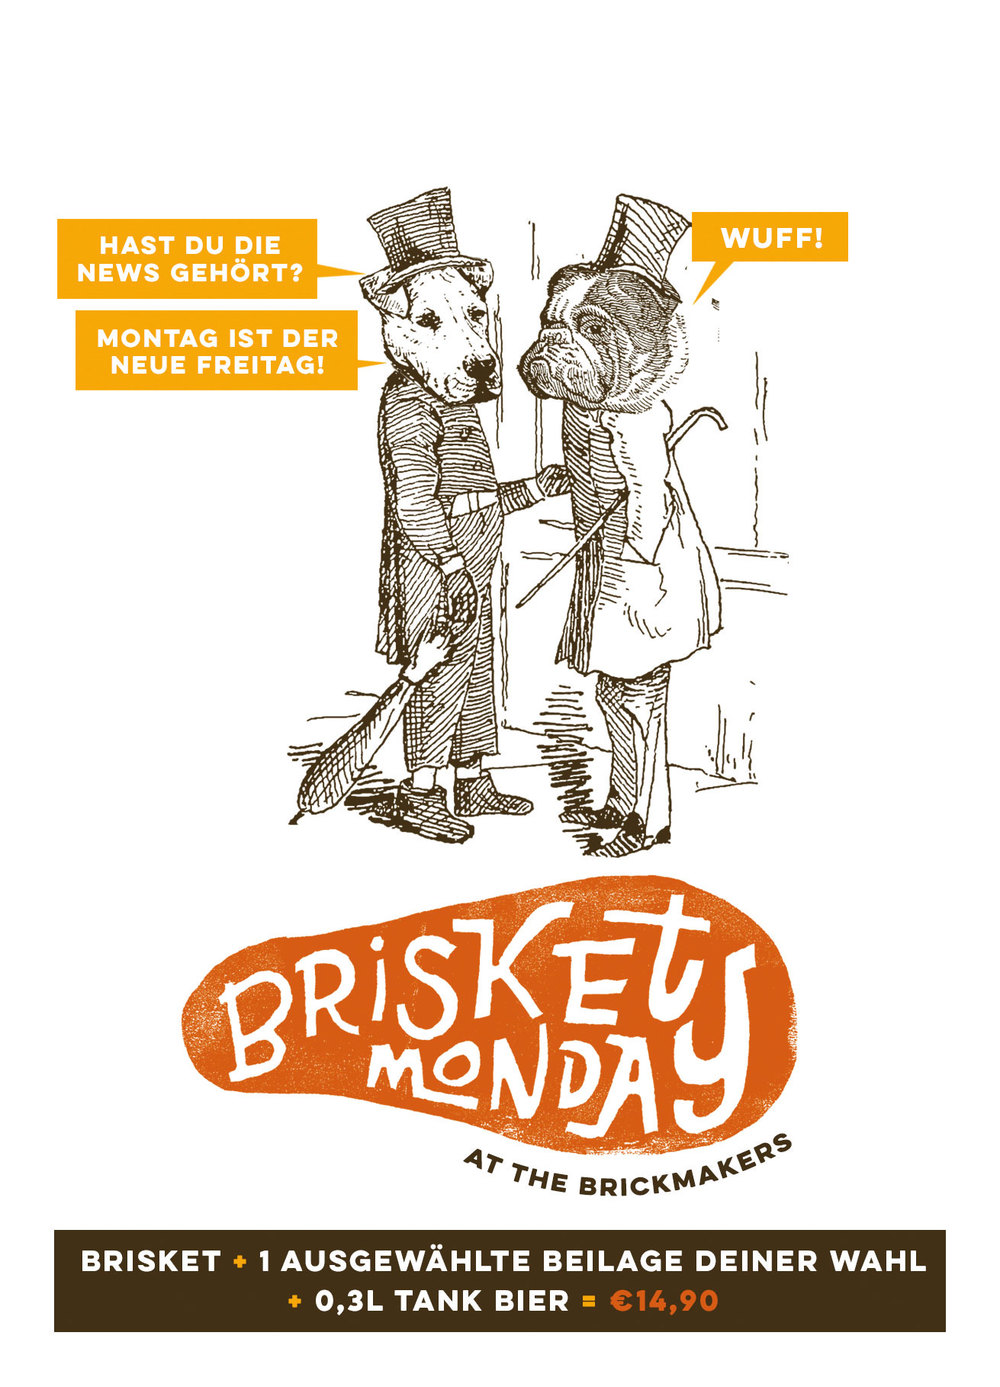 Brickmakers_Brisket_Monday